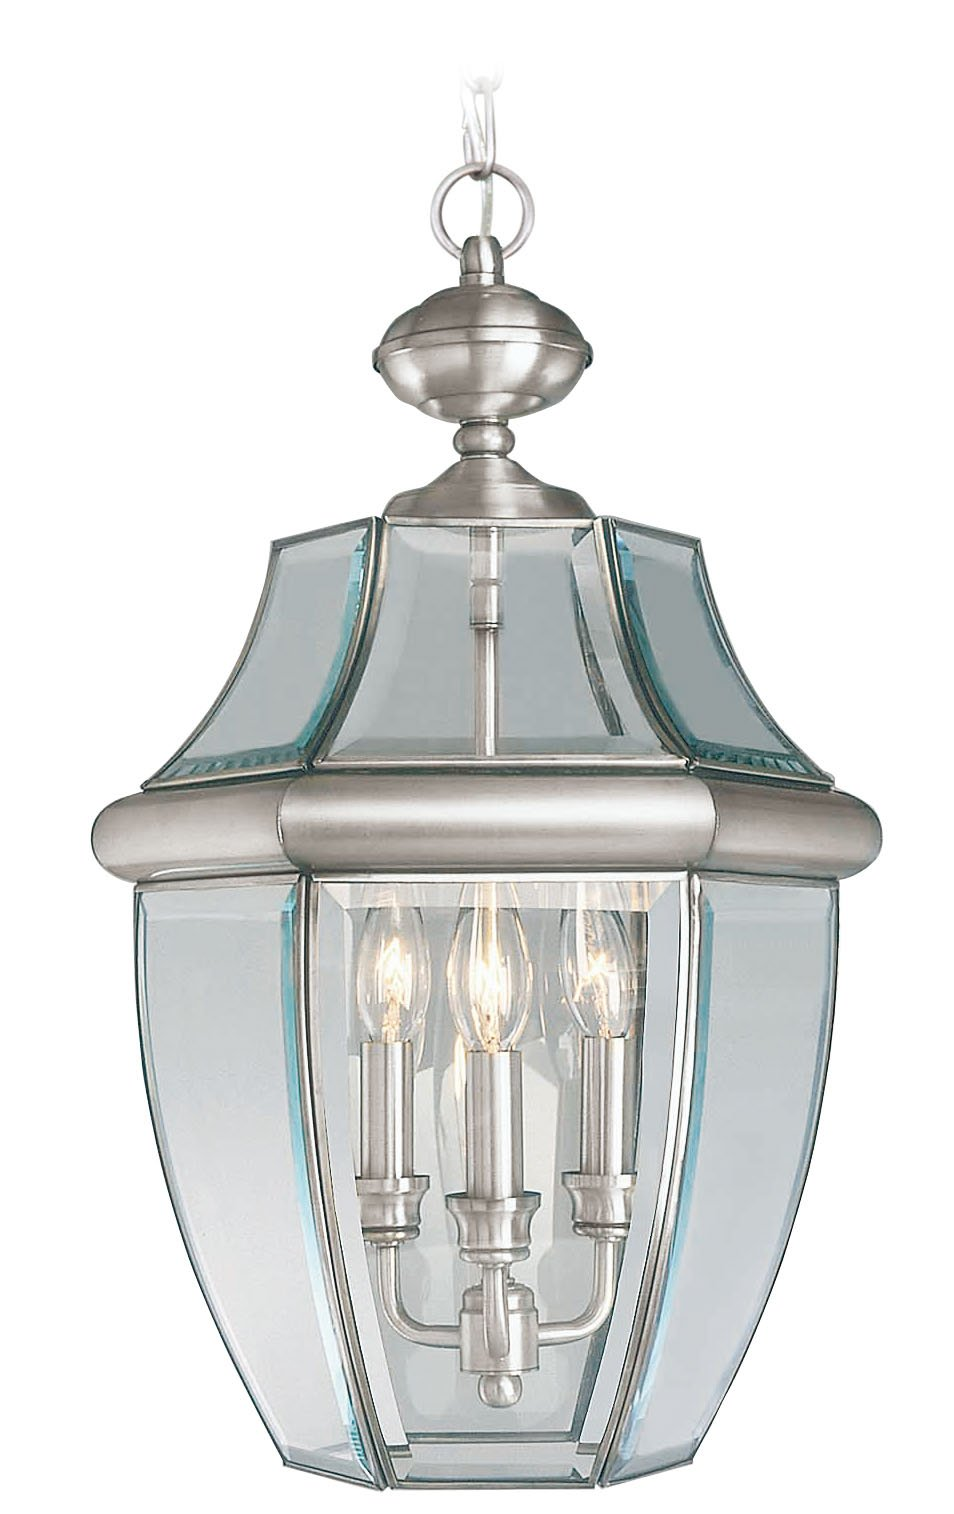 Livex Lighting 2355-91 Monterey 3 Light Outdoor Brushed Nickel Finish Solid Brass Hanging Lantern with Clear Beveled Glass by Livex Lighting